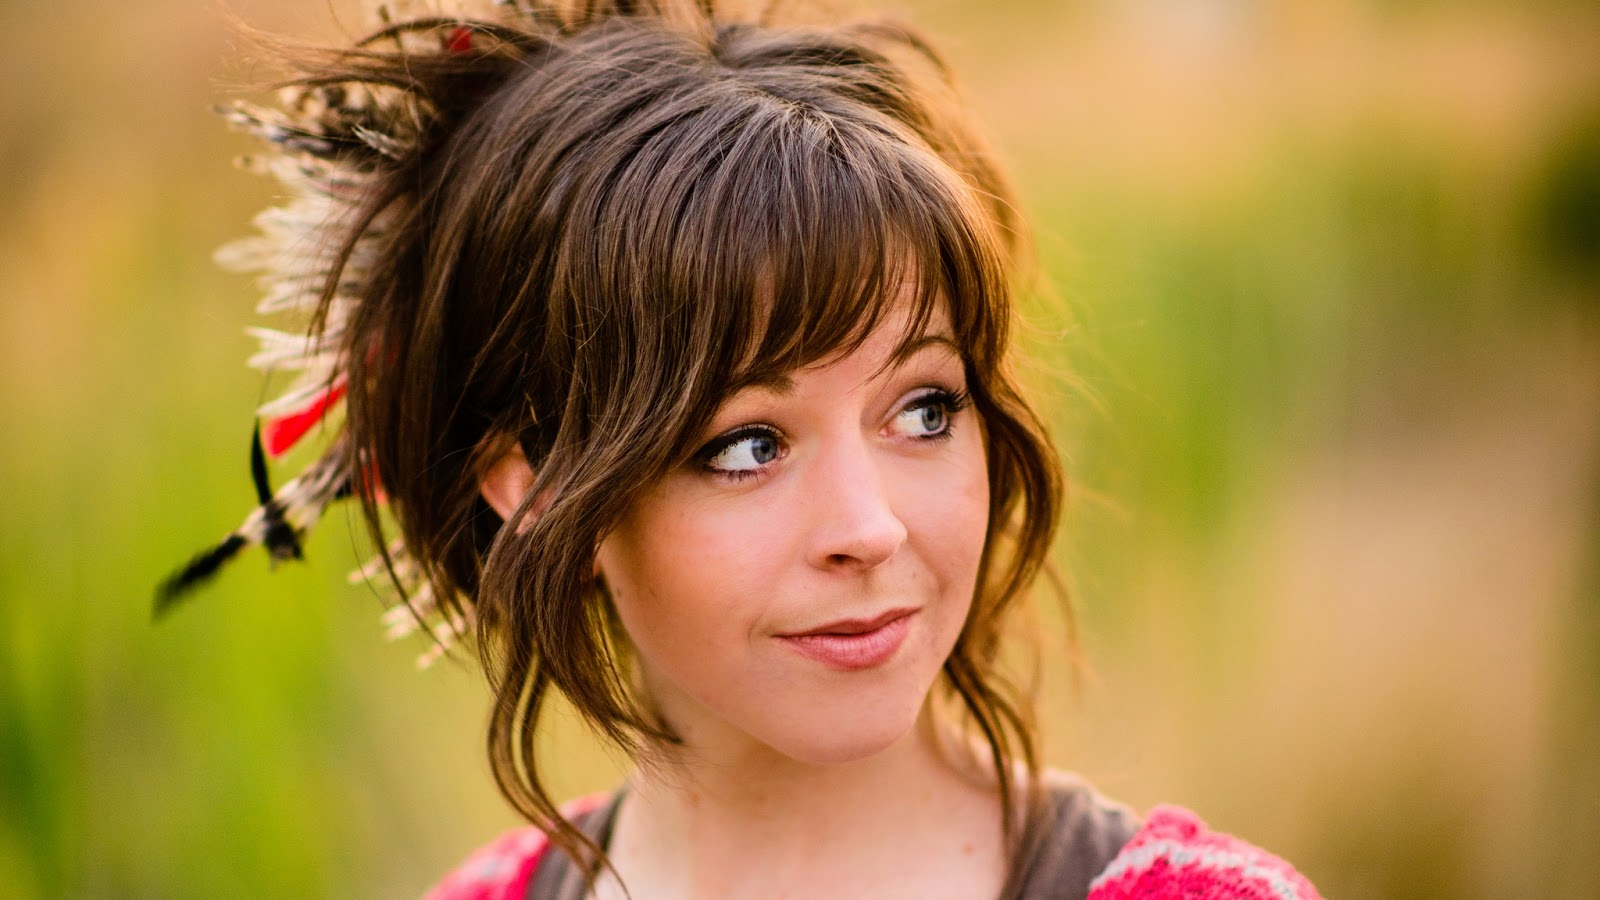 Lindsey+Stirling+0119a_8d10976_cr.jpg